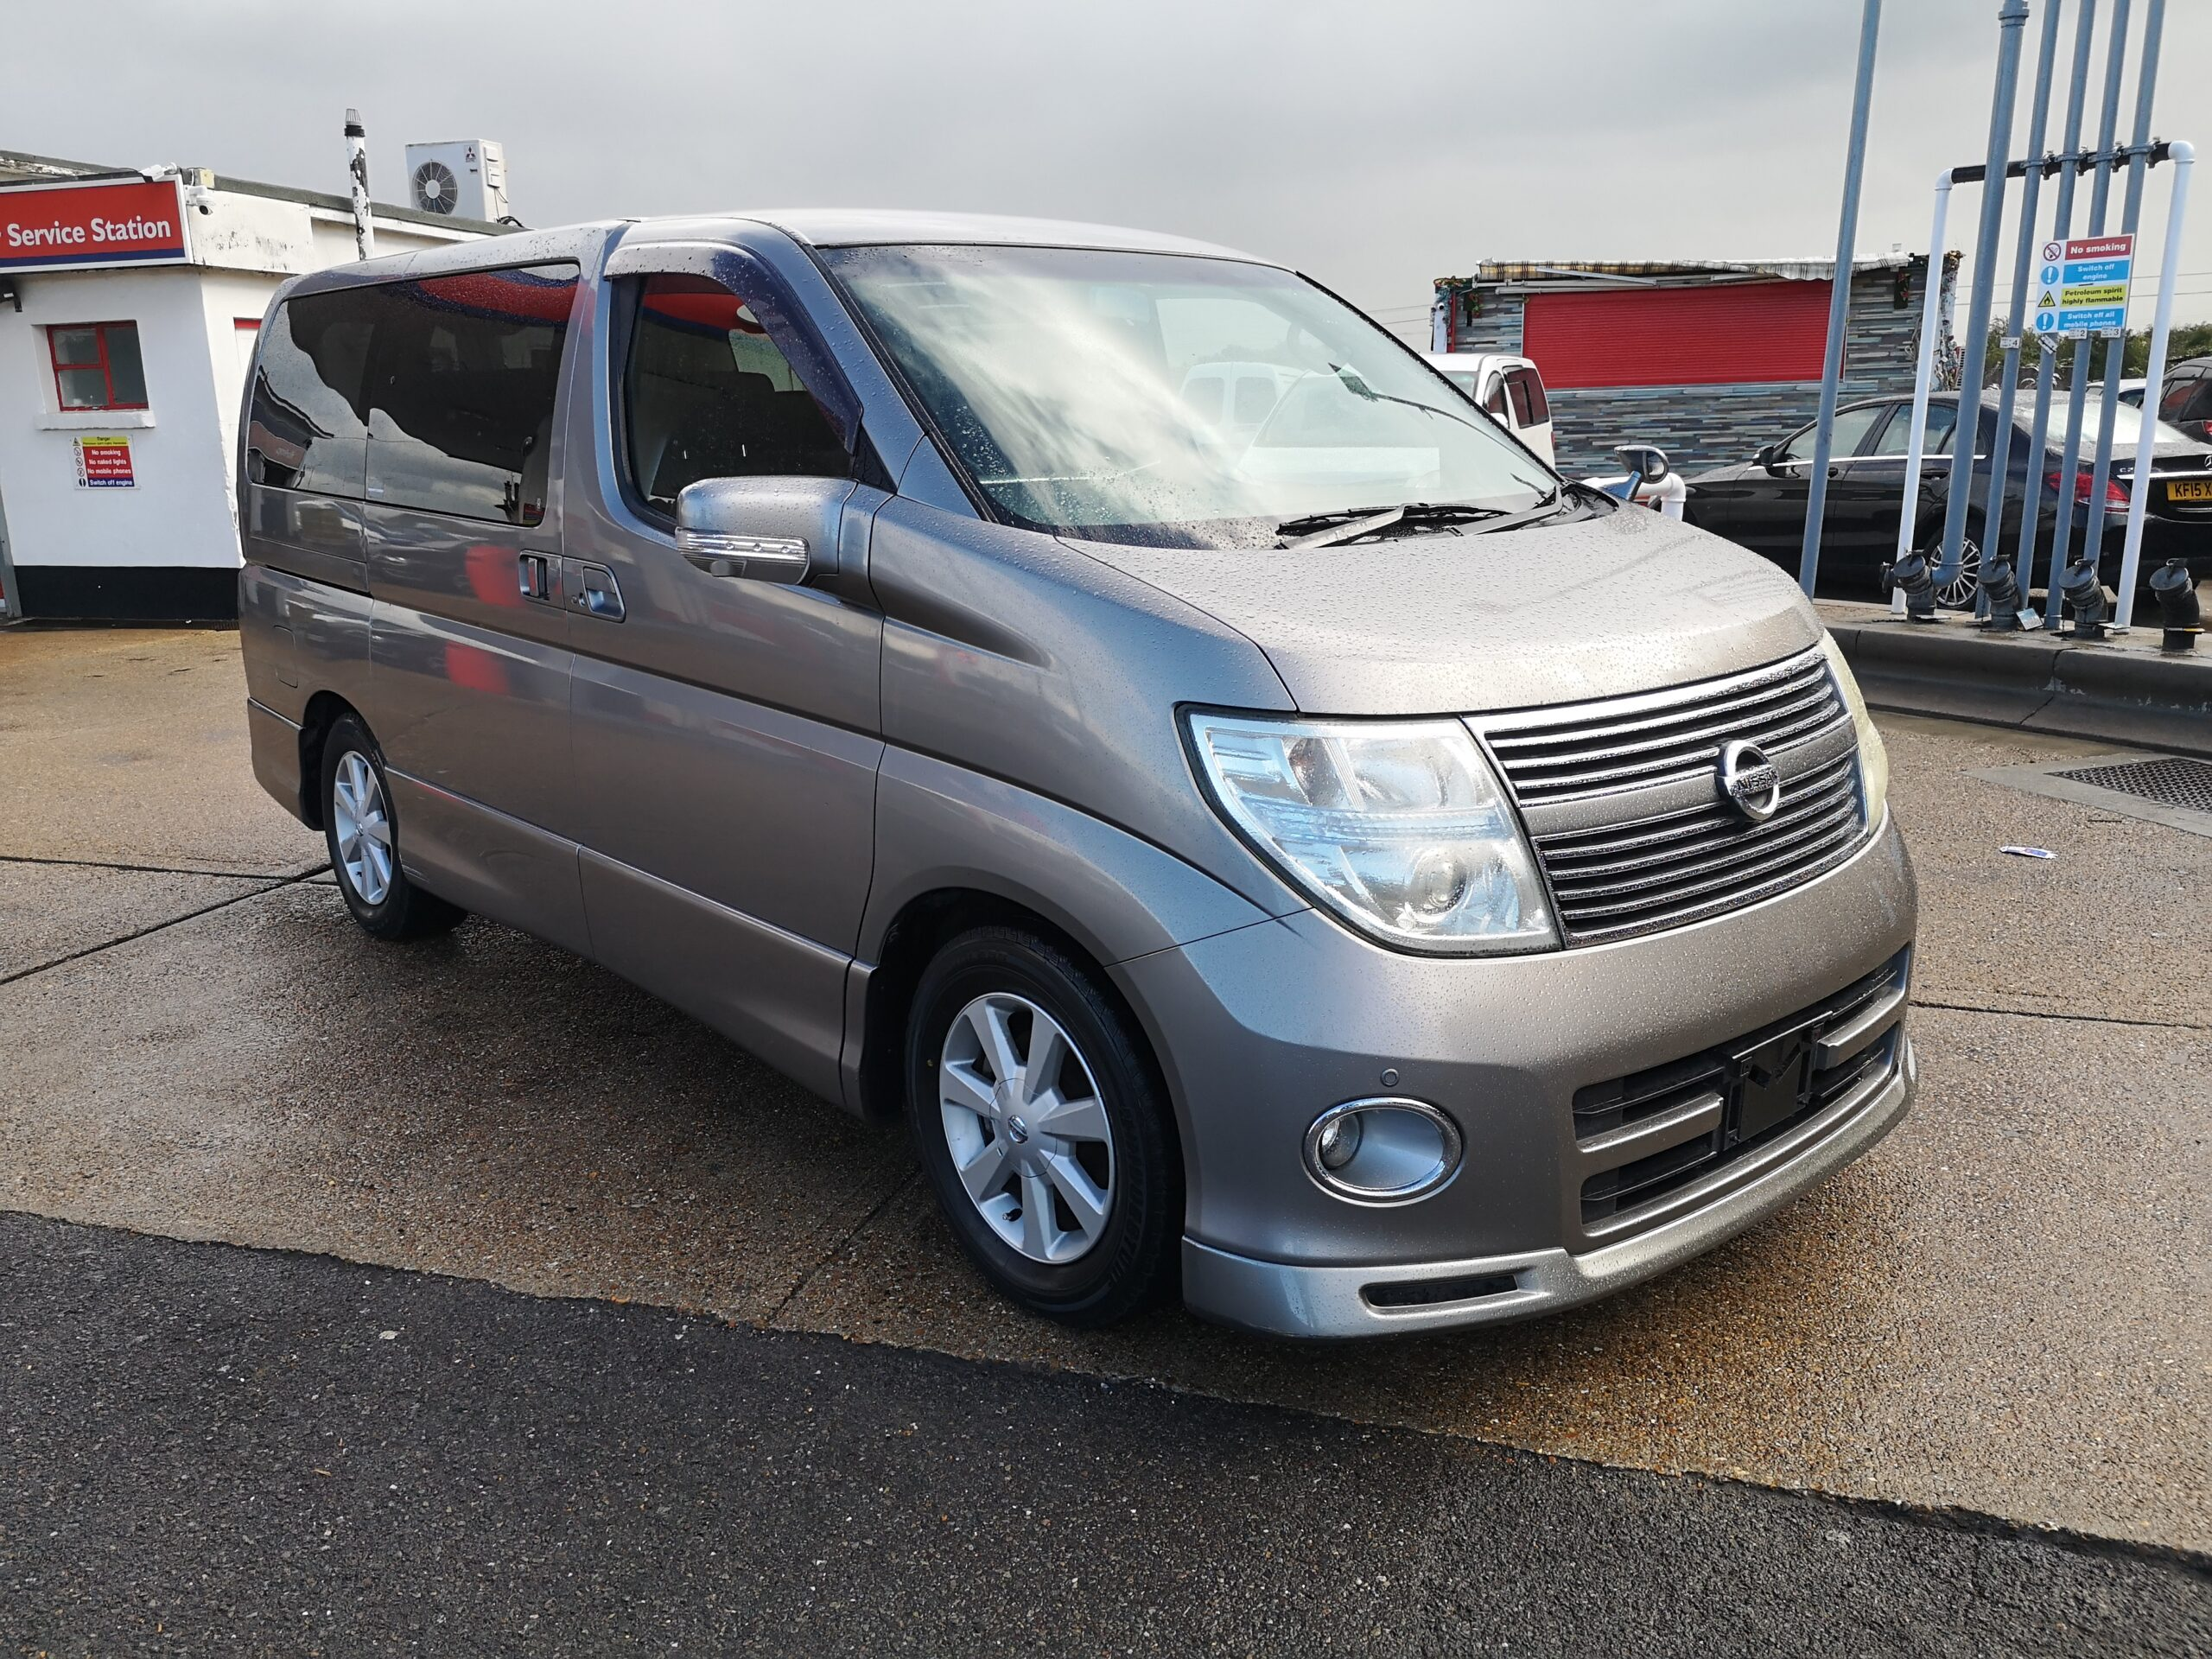 NISSAN ELGRAND HIGHWAY STAR 3.5 V6 2009(09) 360 CAMERA,HEATED LEATHER SEATS